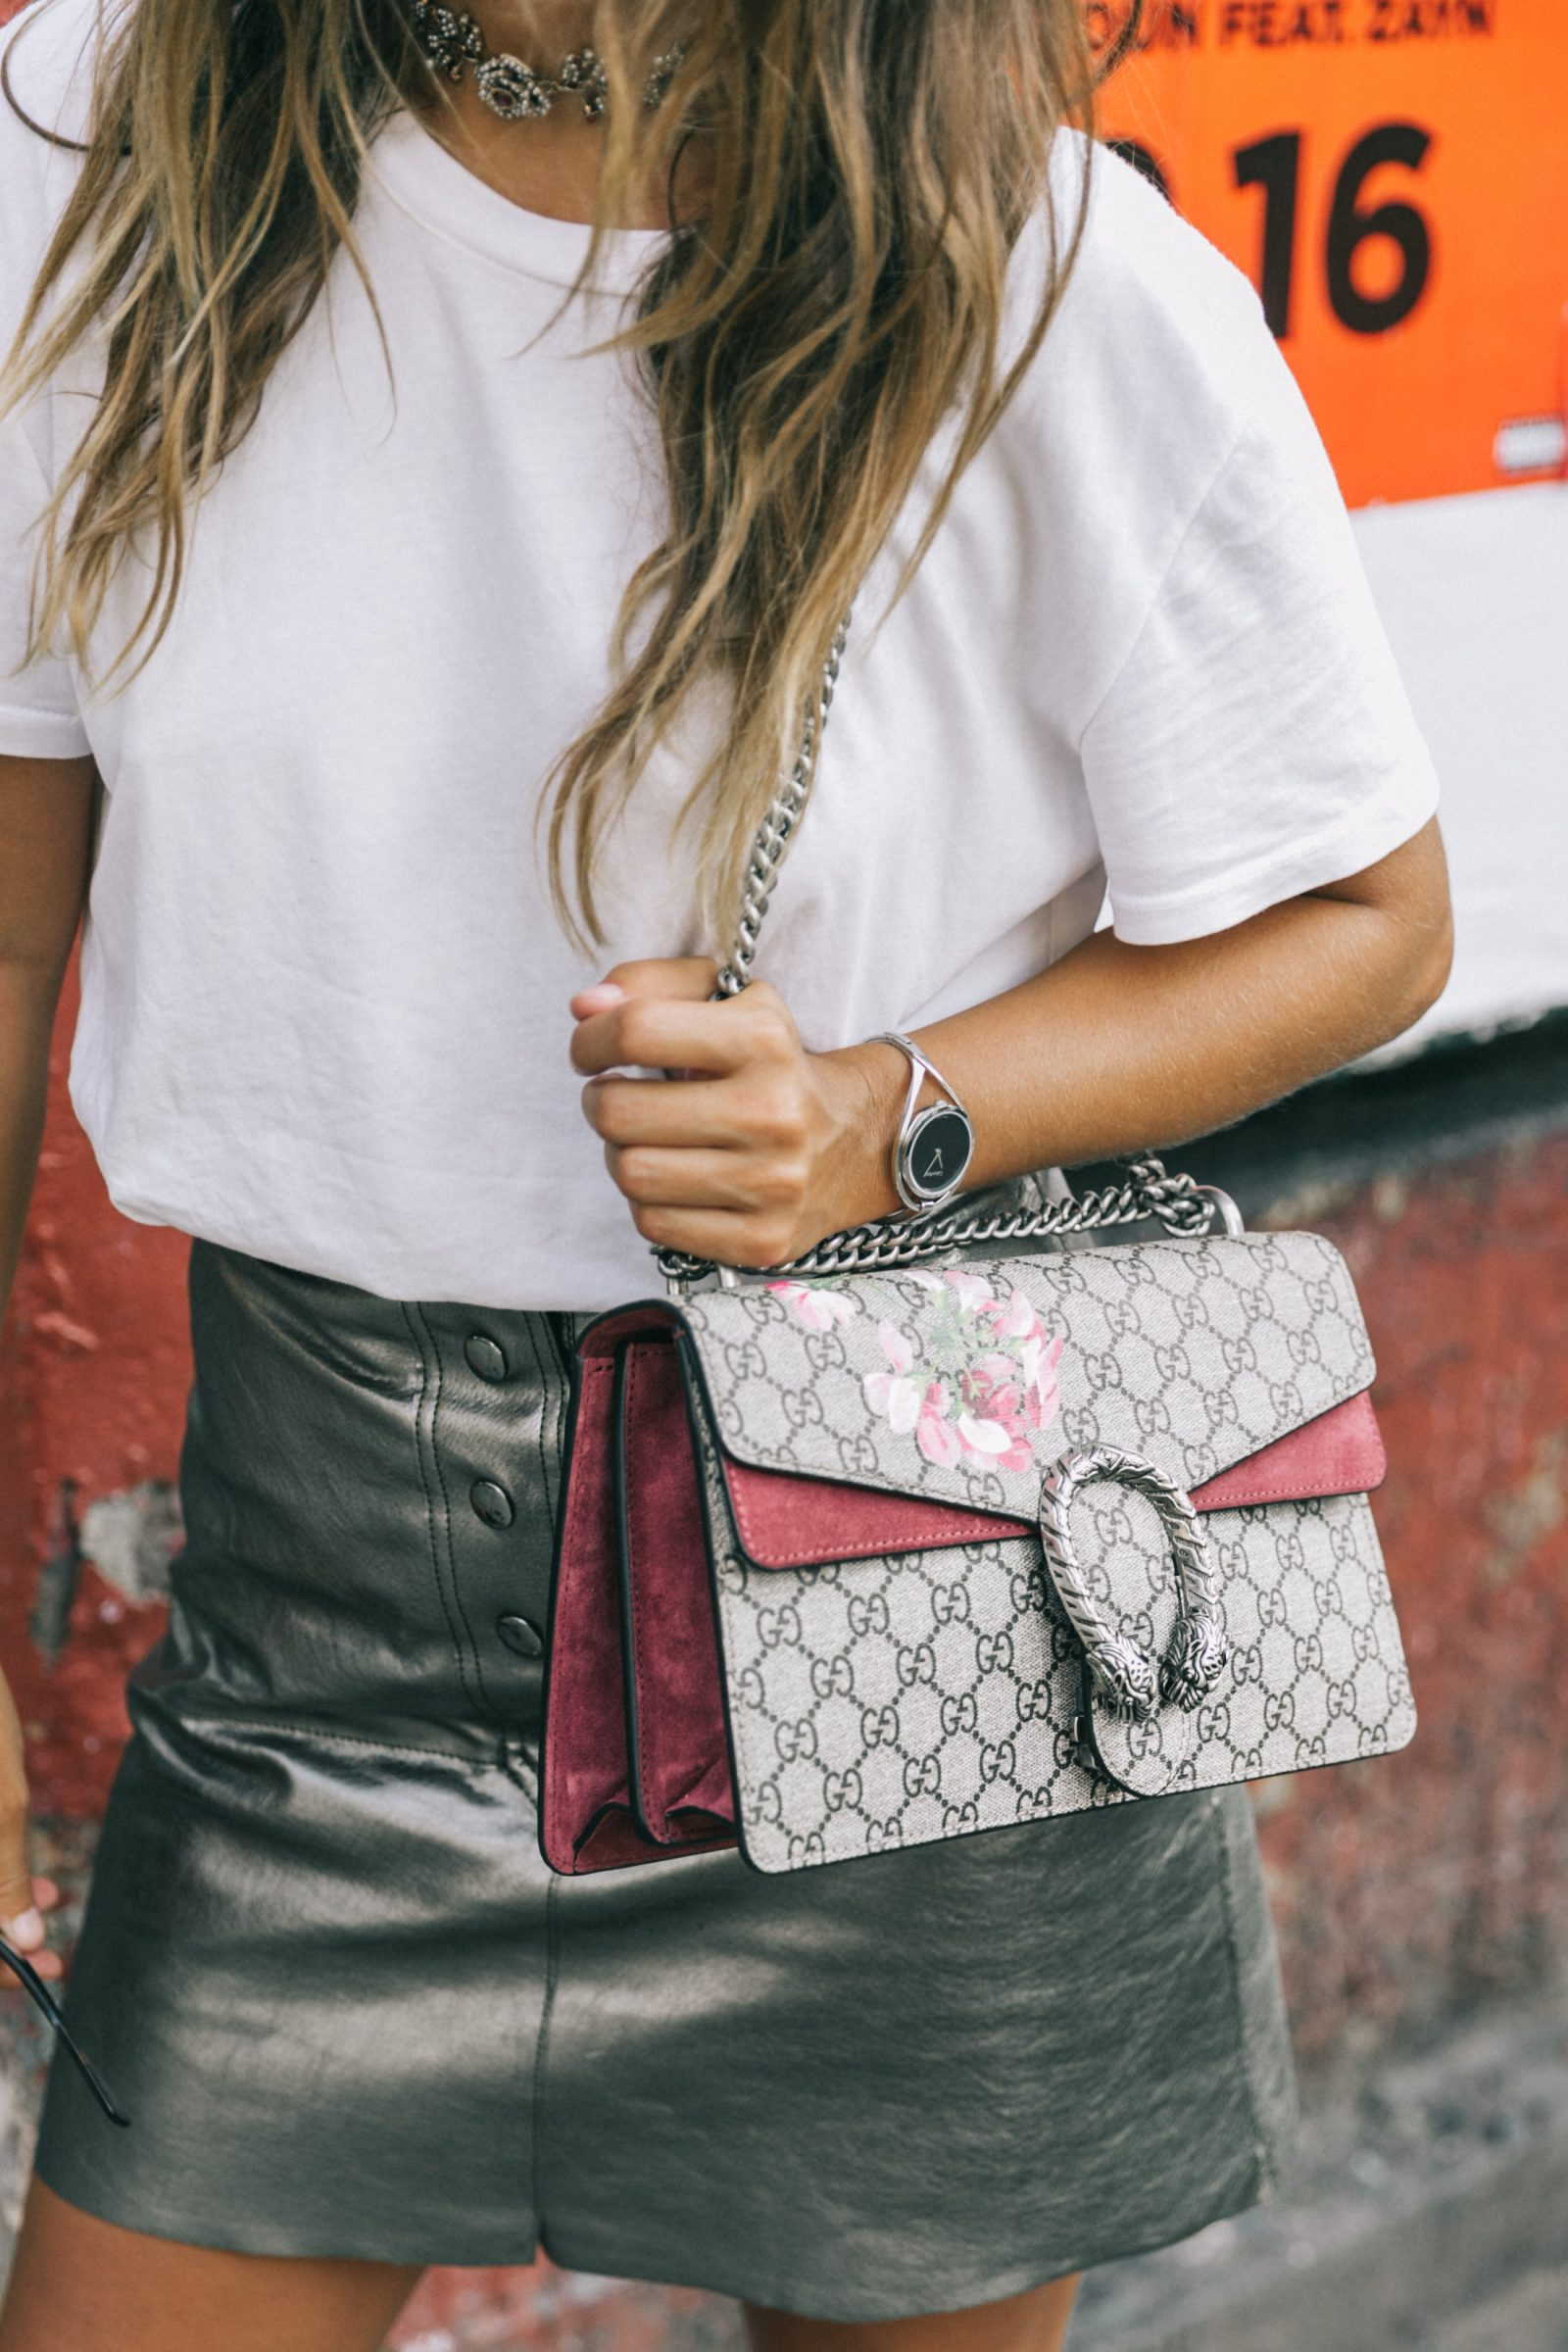 nyfw-new_york_fashion_week_ss17-street_style-outfit-collage_vintage-metallic_leather_skirt-gucci_bag-soludos_espadriles-65